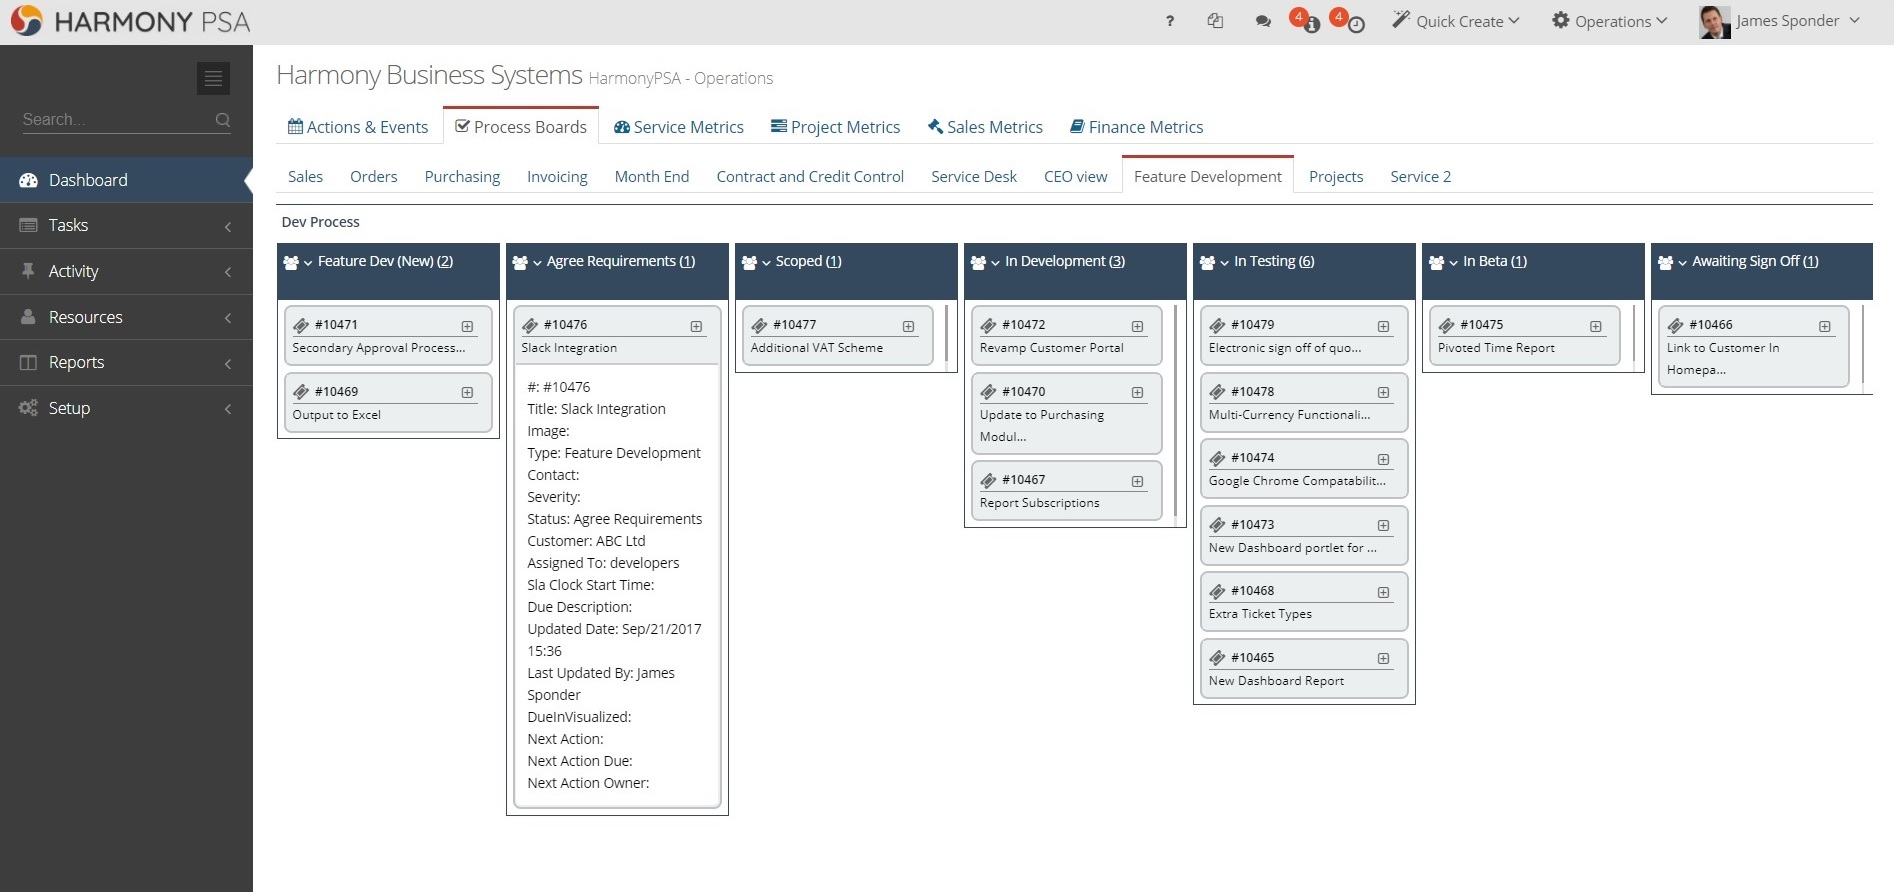 HarmonyPSA Software - Harmony delivers fully configurable and personalised Kanban boards across the entire system, from Sales to Finance. All core business processes can be visualised in seconds, published to teams or kept private.